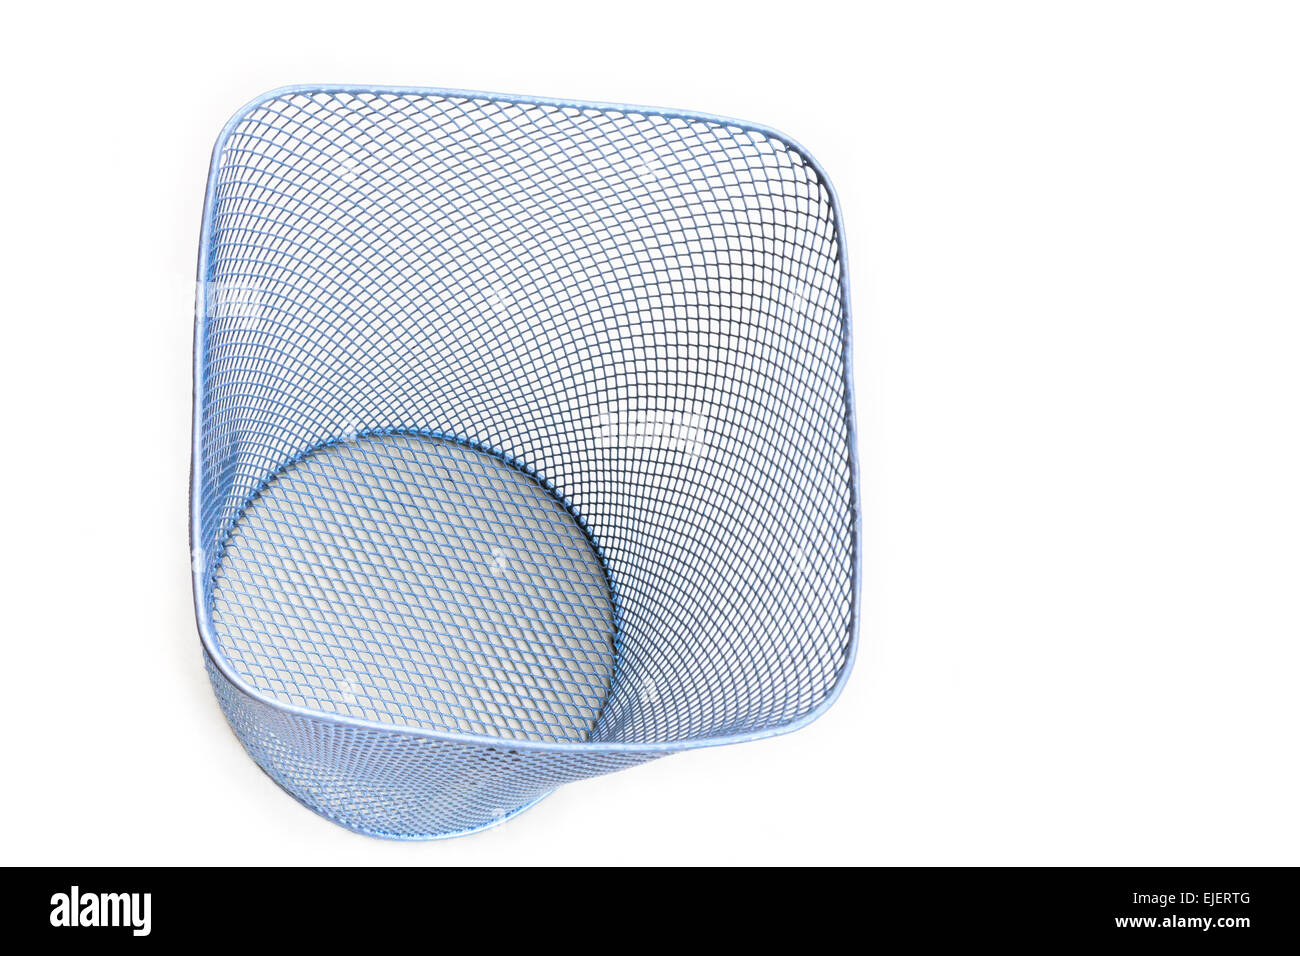 Empty metal mesh wastepaper basket cut-out and isolated on a white from above - Stock Image